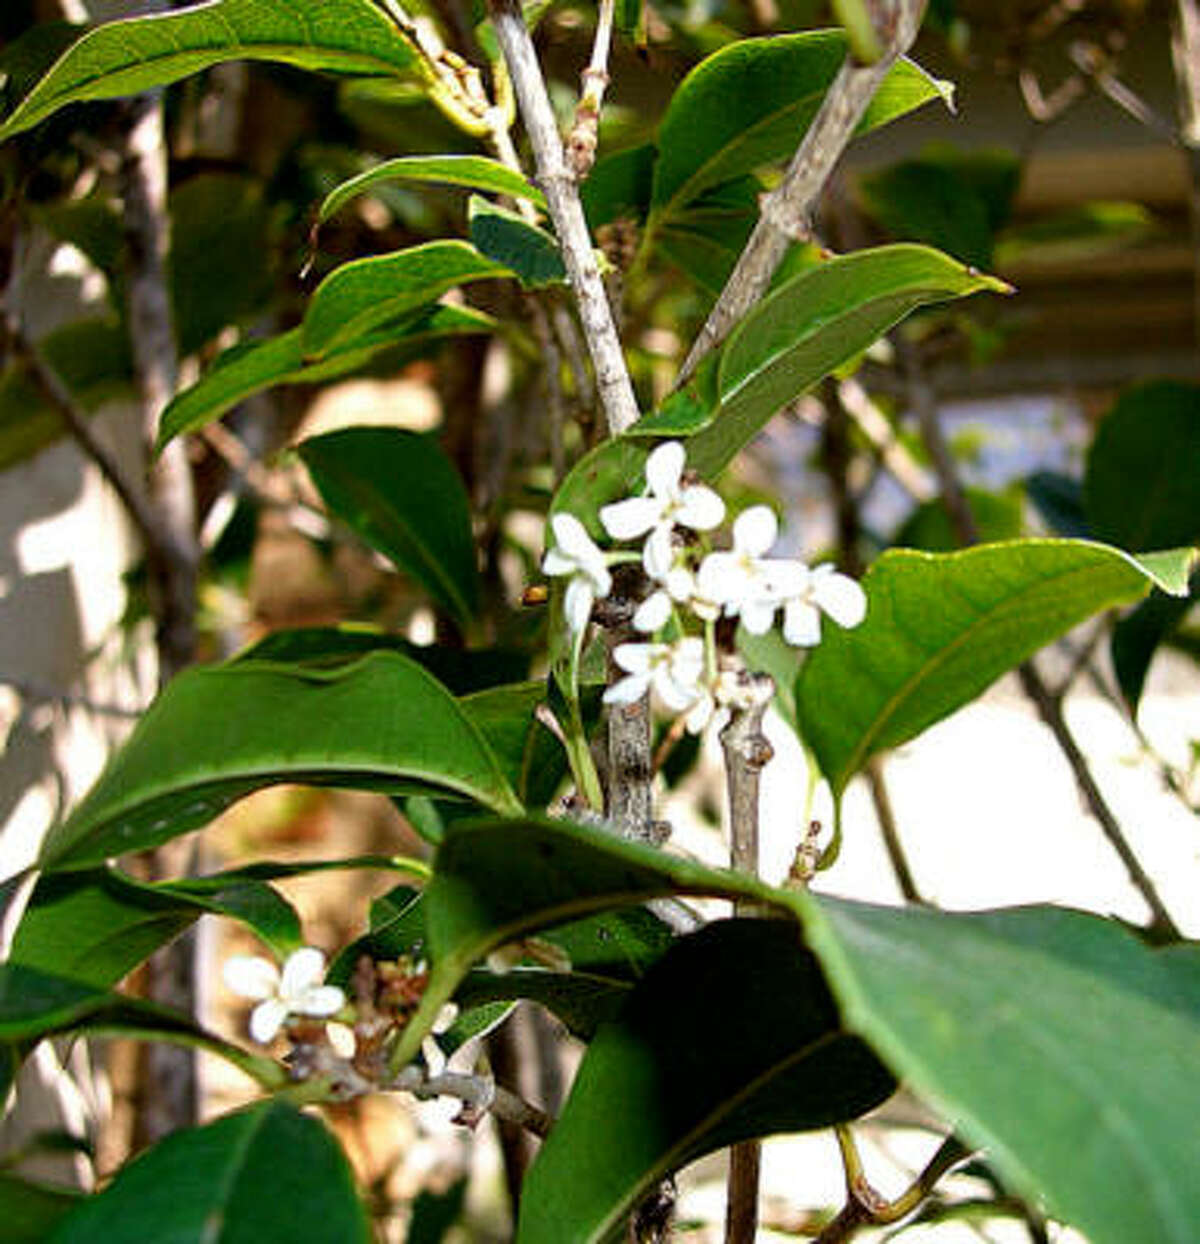 Tiny blooms of sweet olive permeate the garden with a delicate fragrance. The evergreen shrub, which can also be grown as a small tree, blooms throughout the year in response to a change in wet and dry periods.